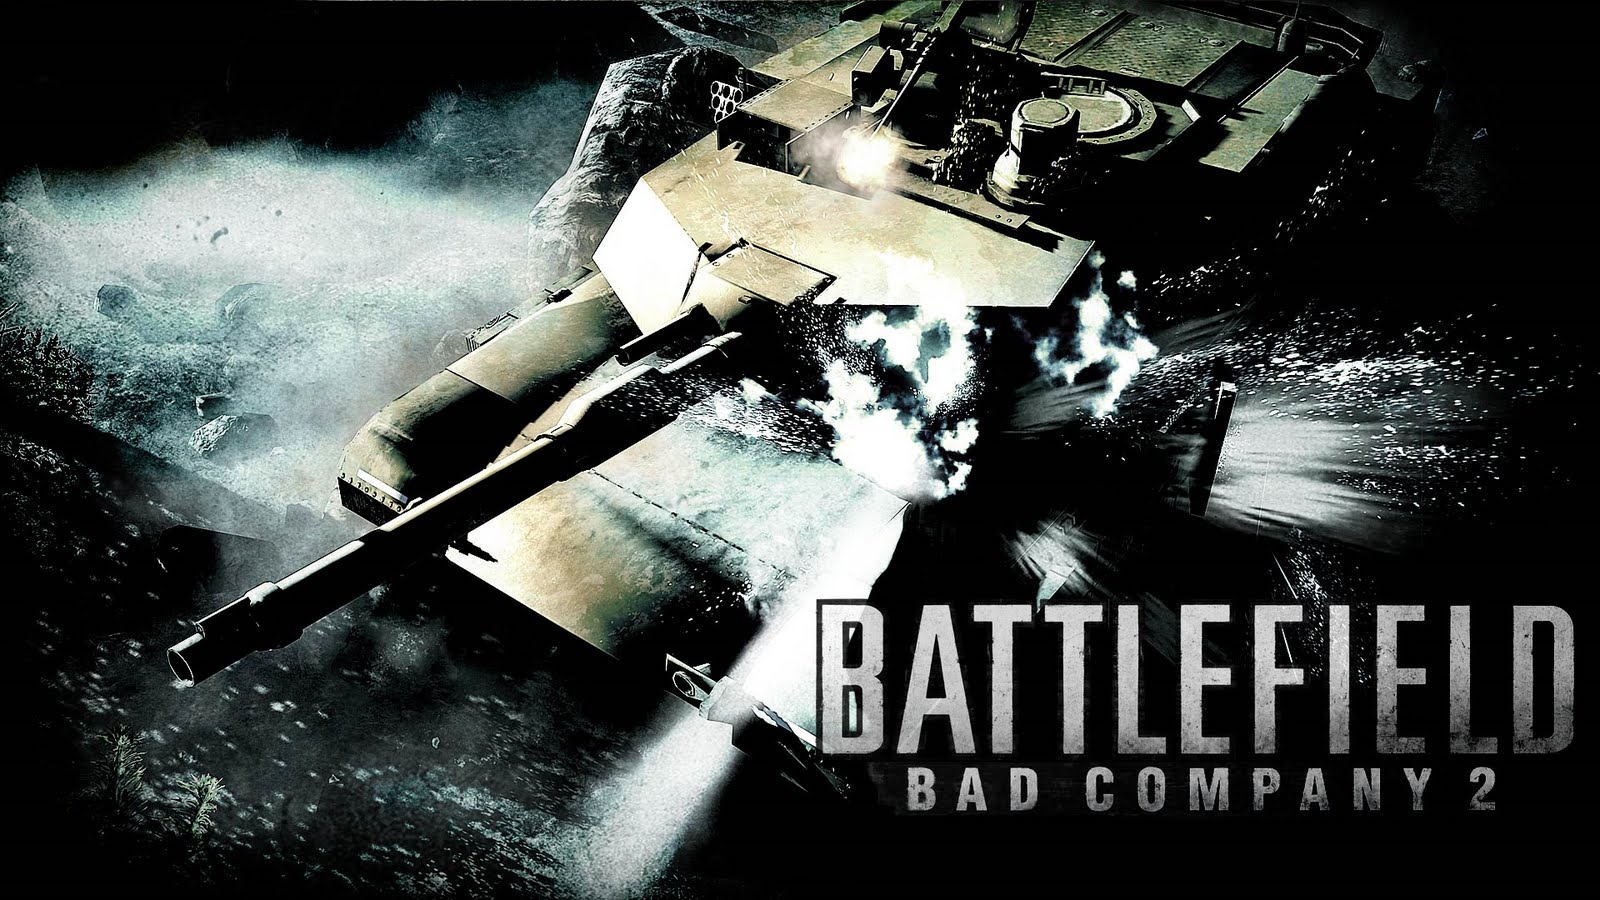 Bad Company 2 HD Wallpapers Download Wallpapers in 1600x900